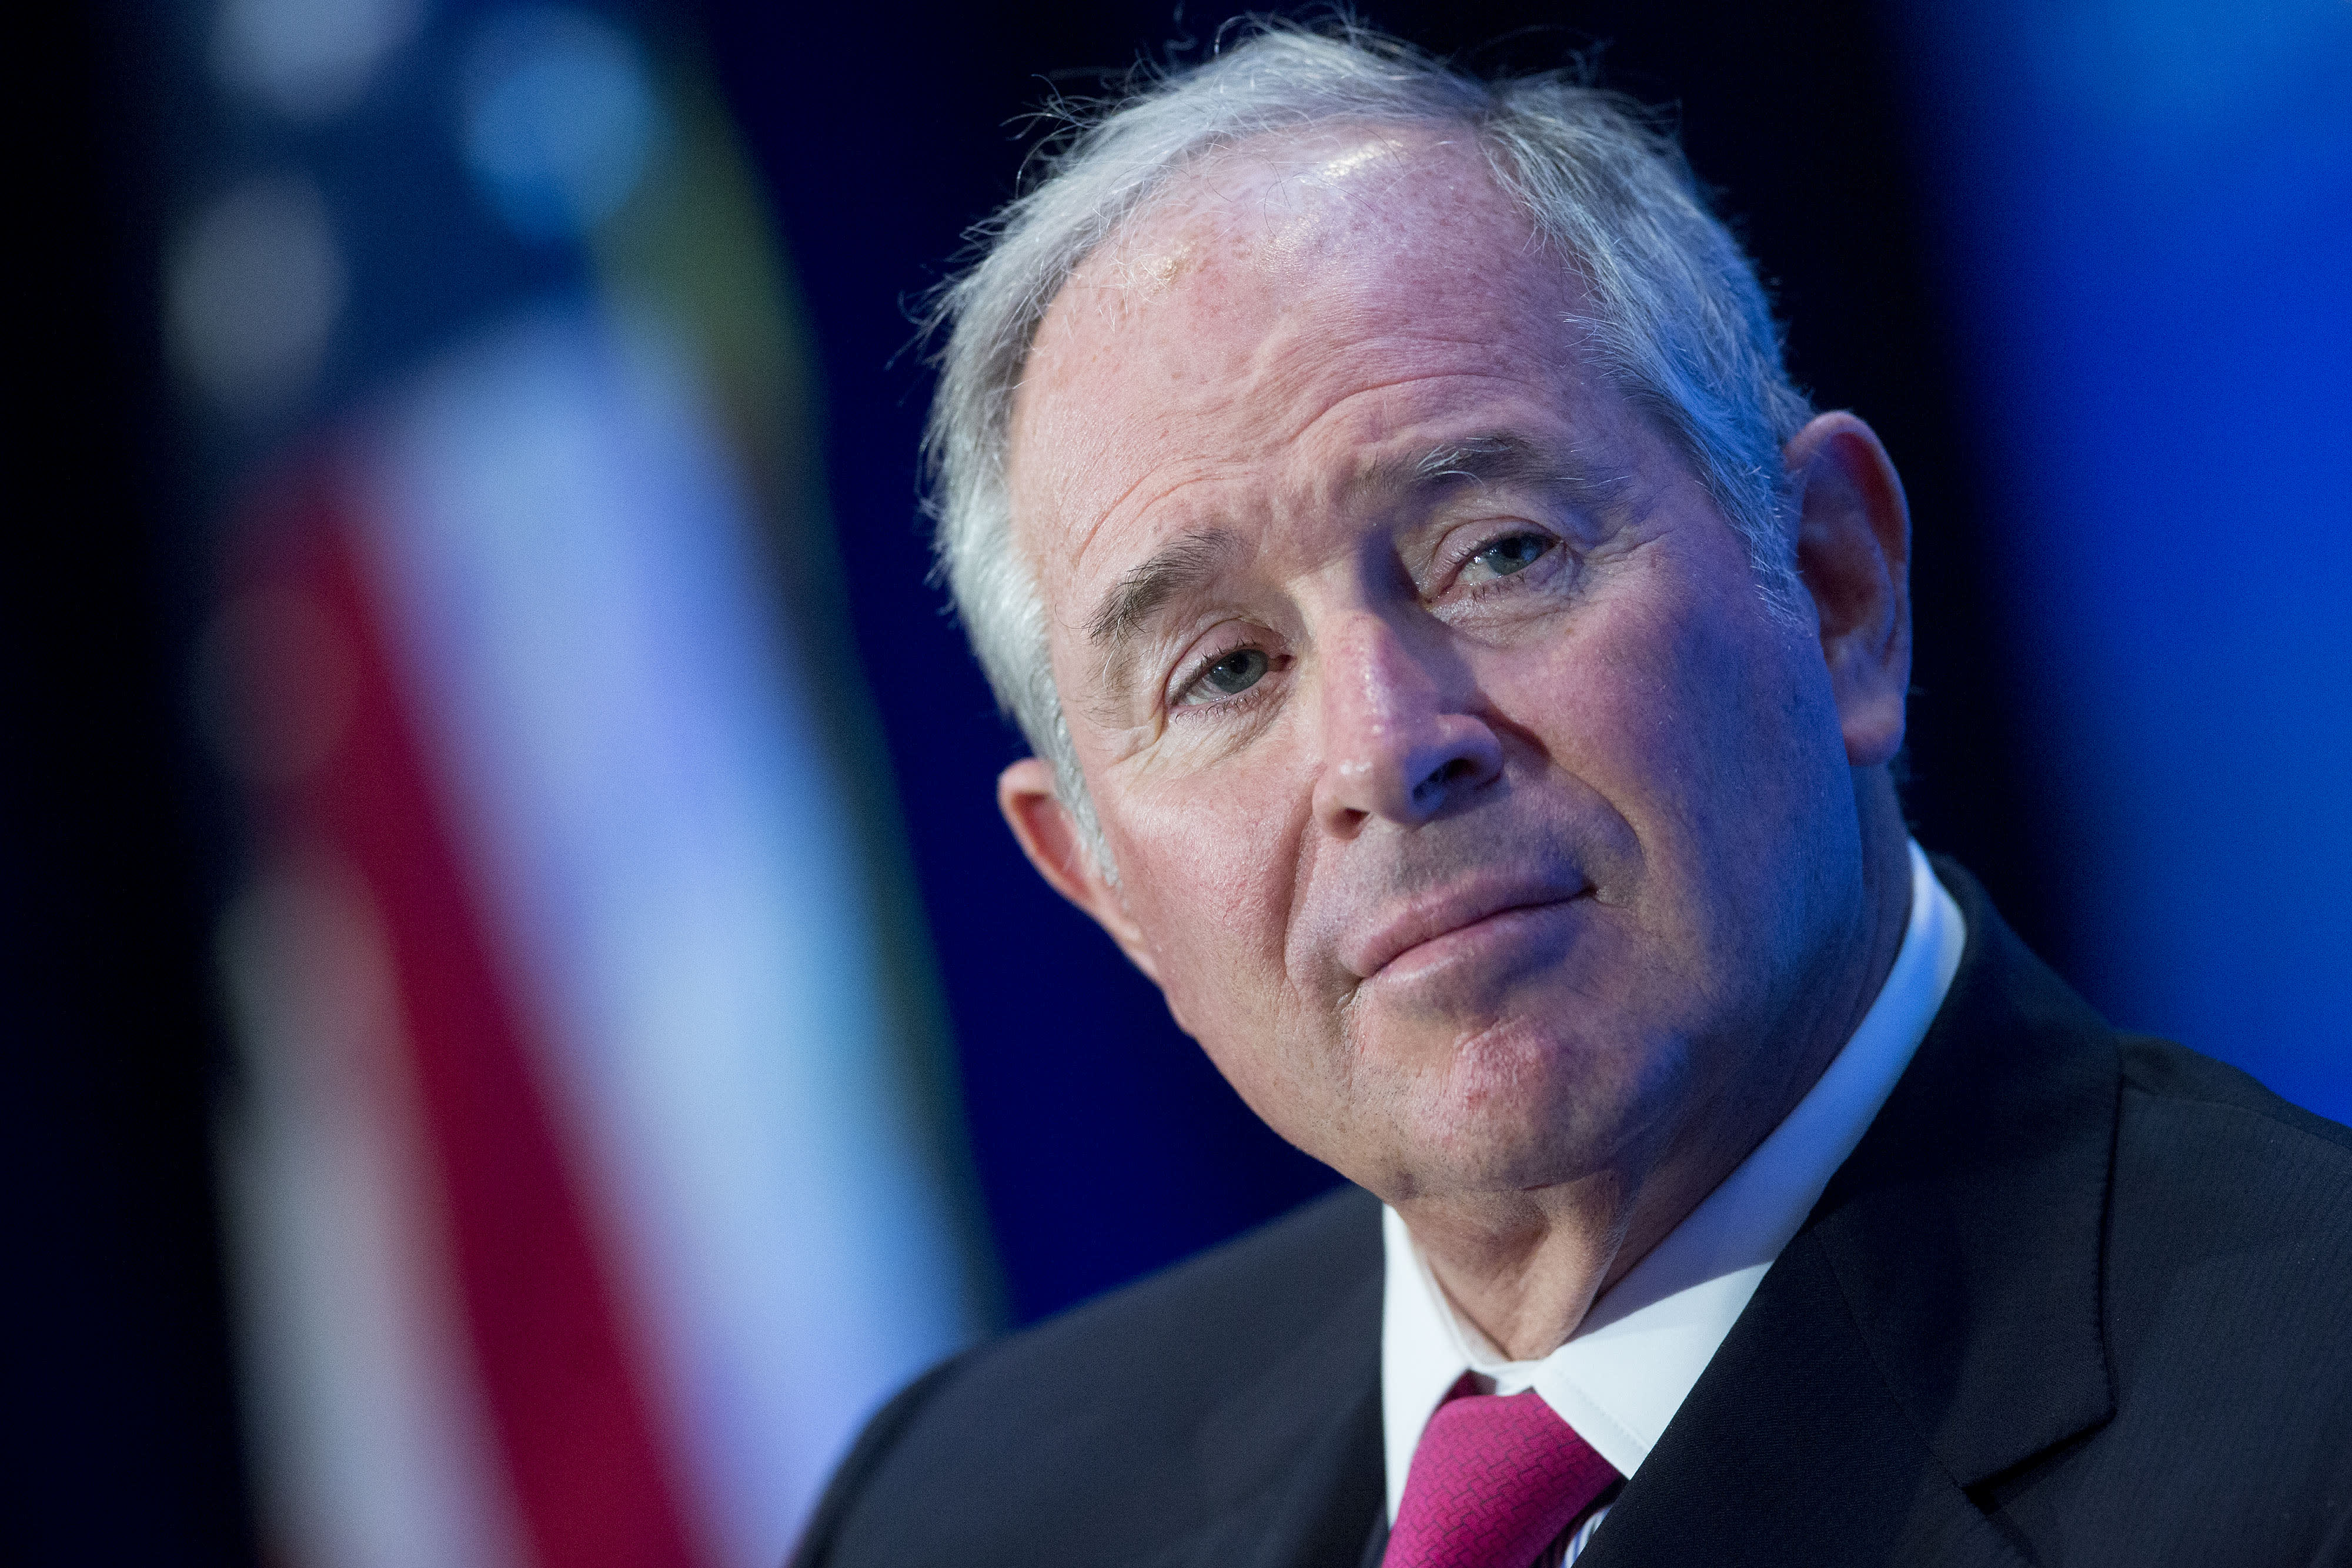 Schwarzman: I'm hearing that China is quickly working to stop illicit fentanyl shipments to the US